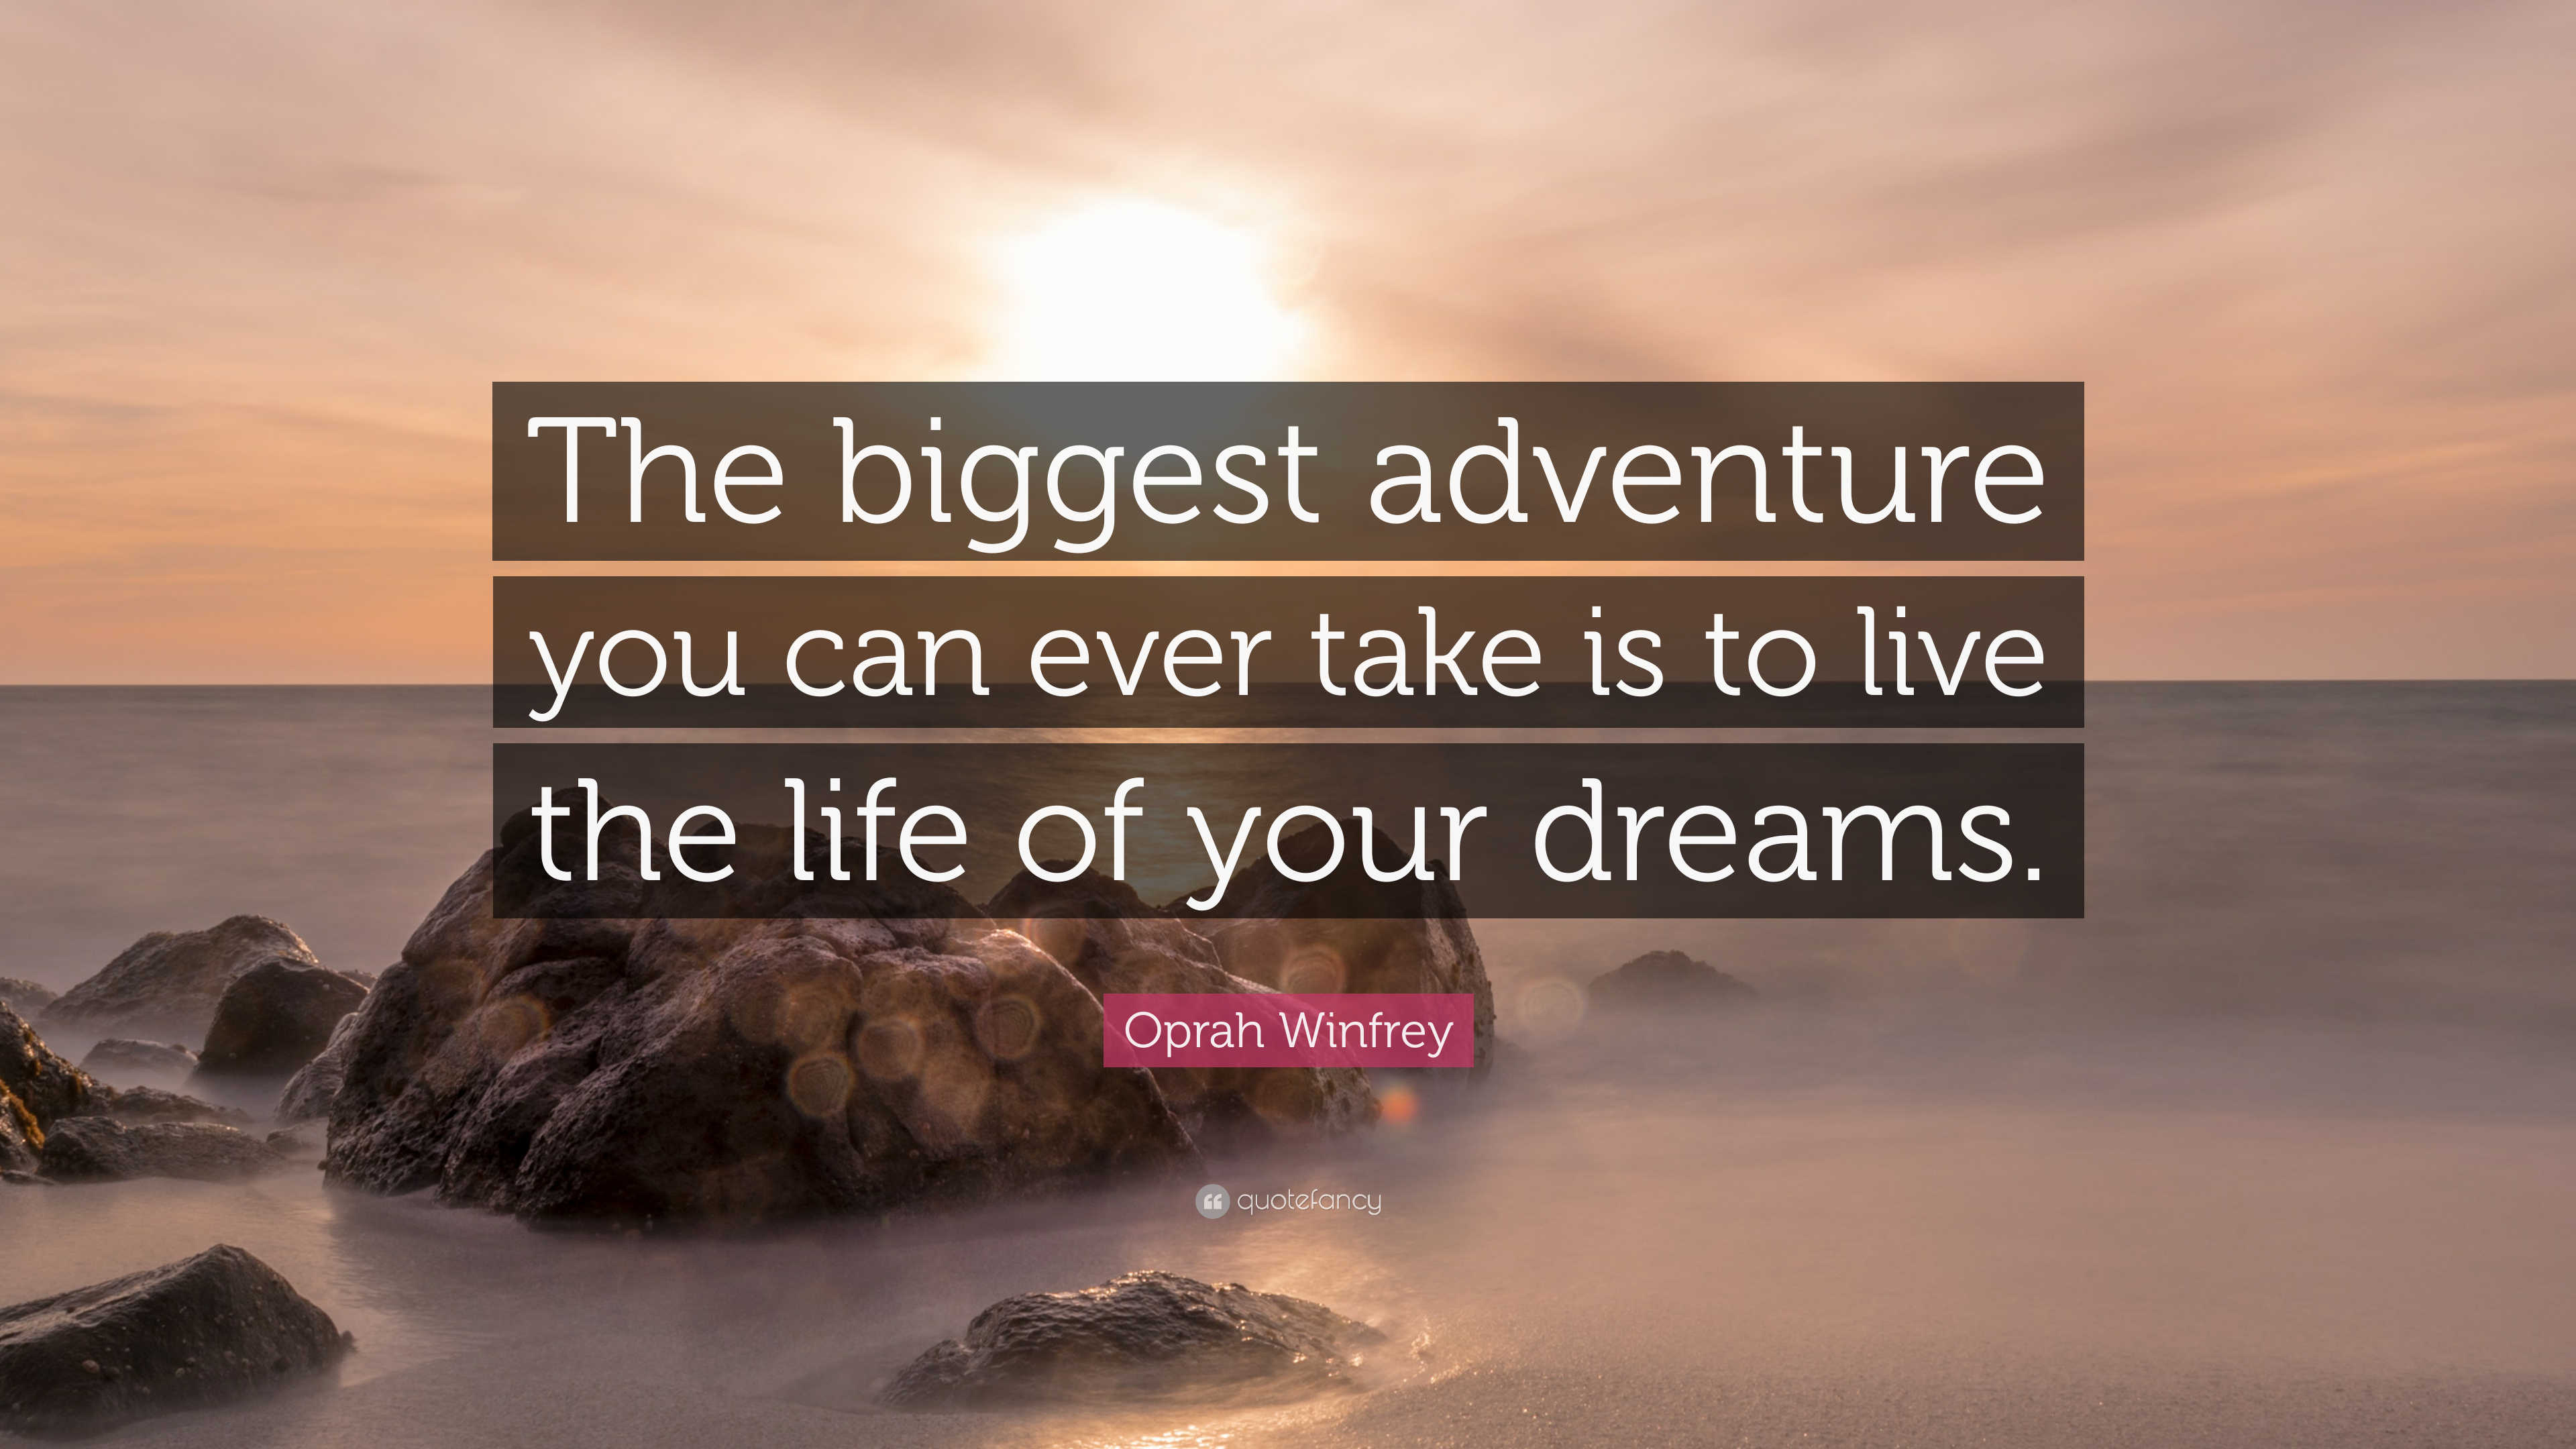 Exceptional Travel Quotes: U201cThe Biggest Adventure You Can Ever Take Is To Live The Life